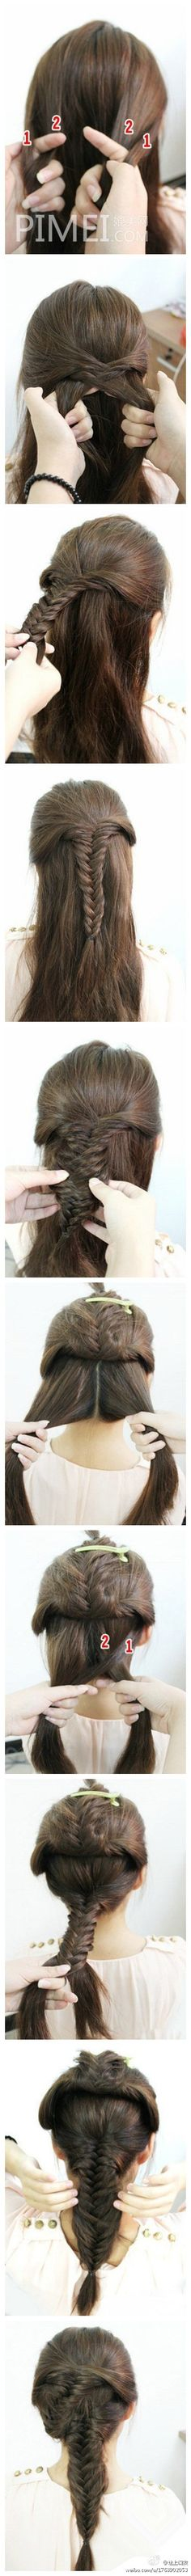 braid diy